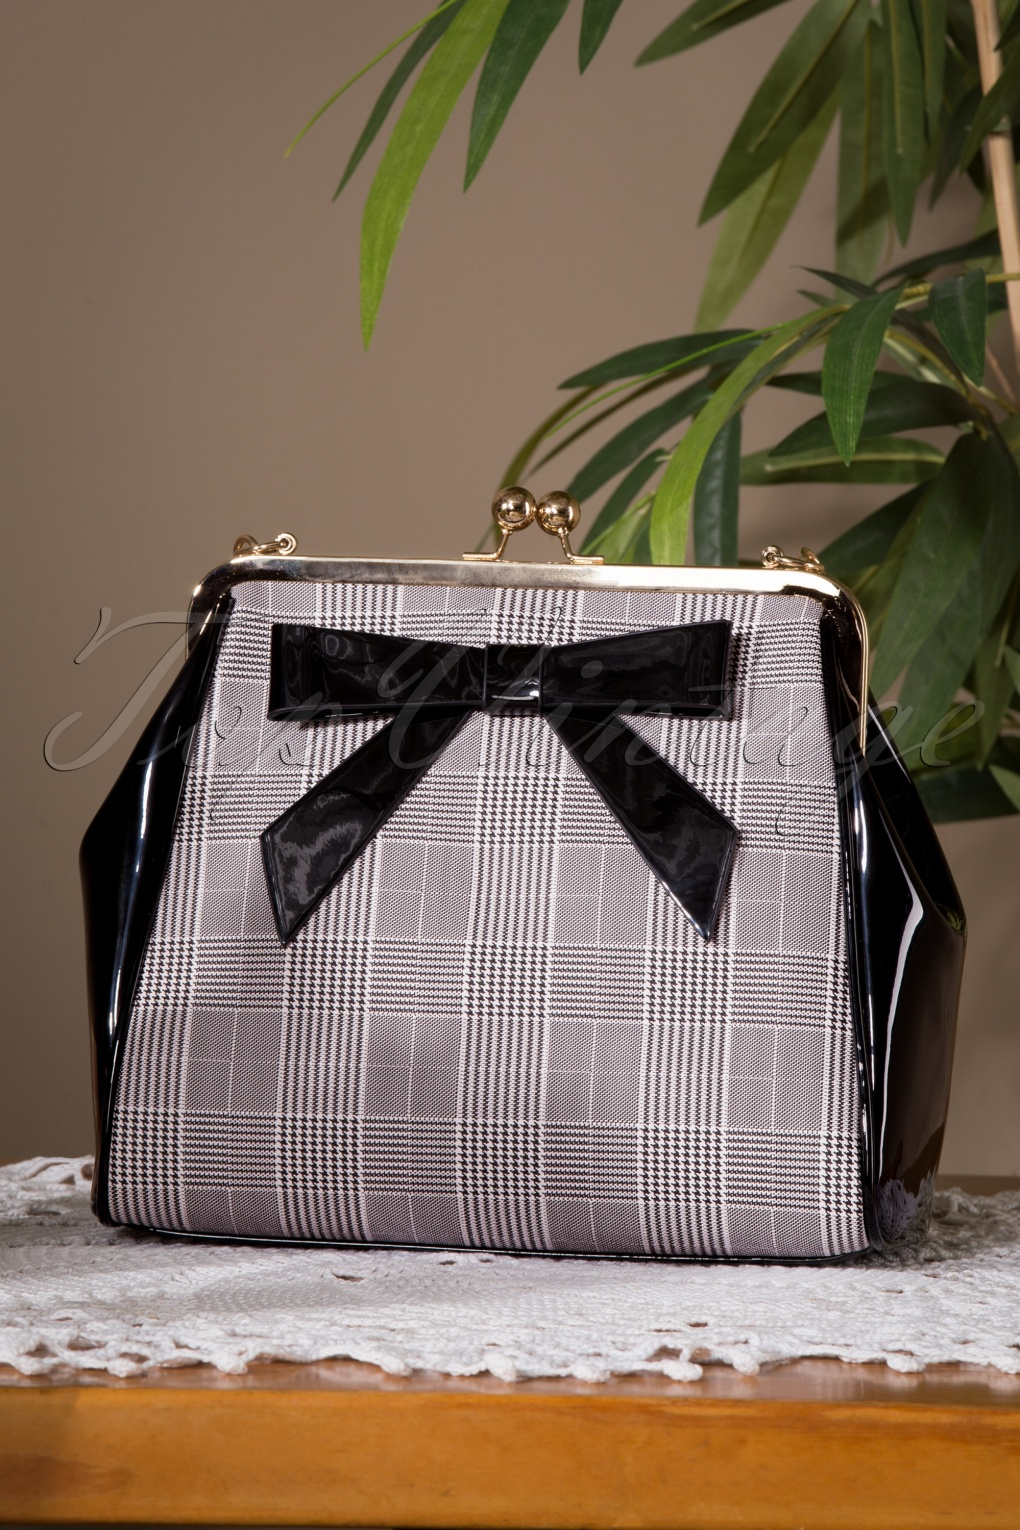 1950s Handbags, Purses, and Evening Bag Styles 50s Caraboo Houndstooth Bag in Black £35.71 AT vintagedancer.com